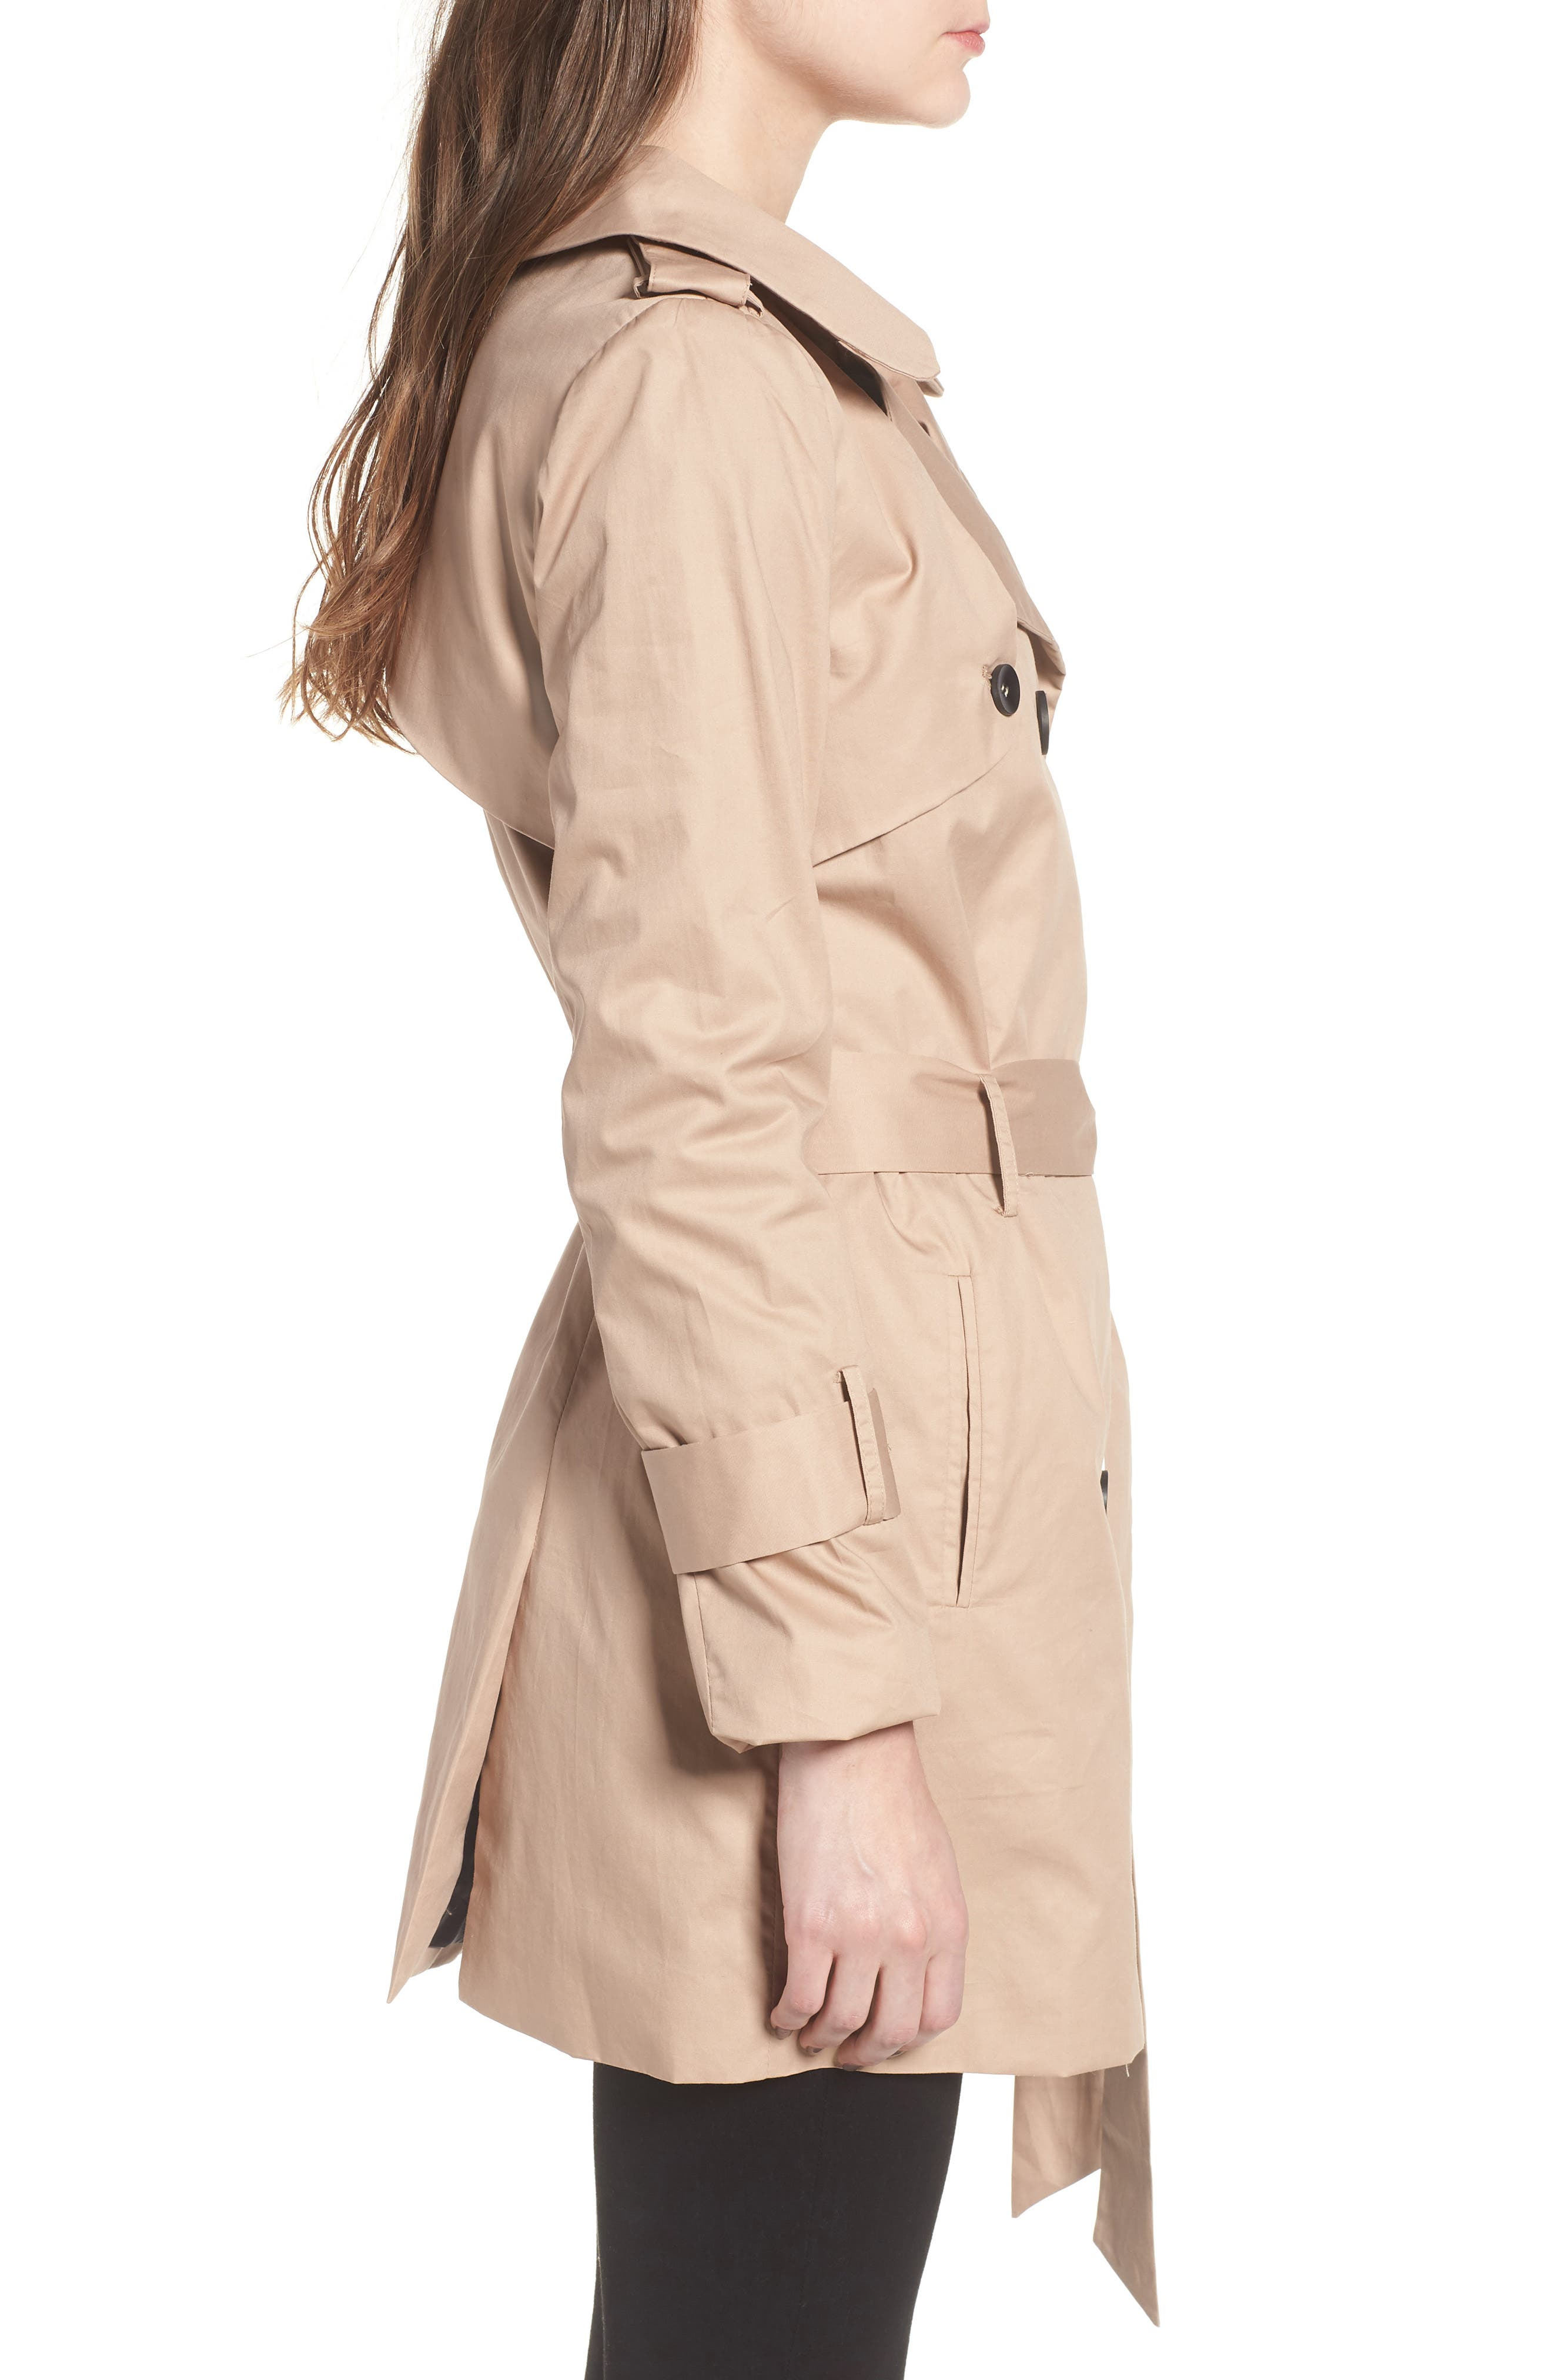 Moss Trench Coat,                             Alternate thumbnail 3, color,                             Sand